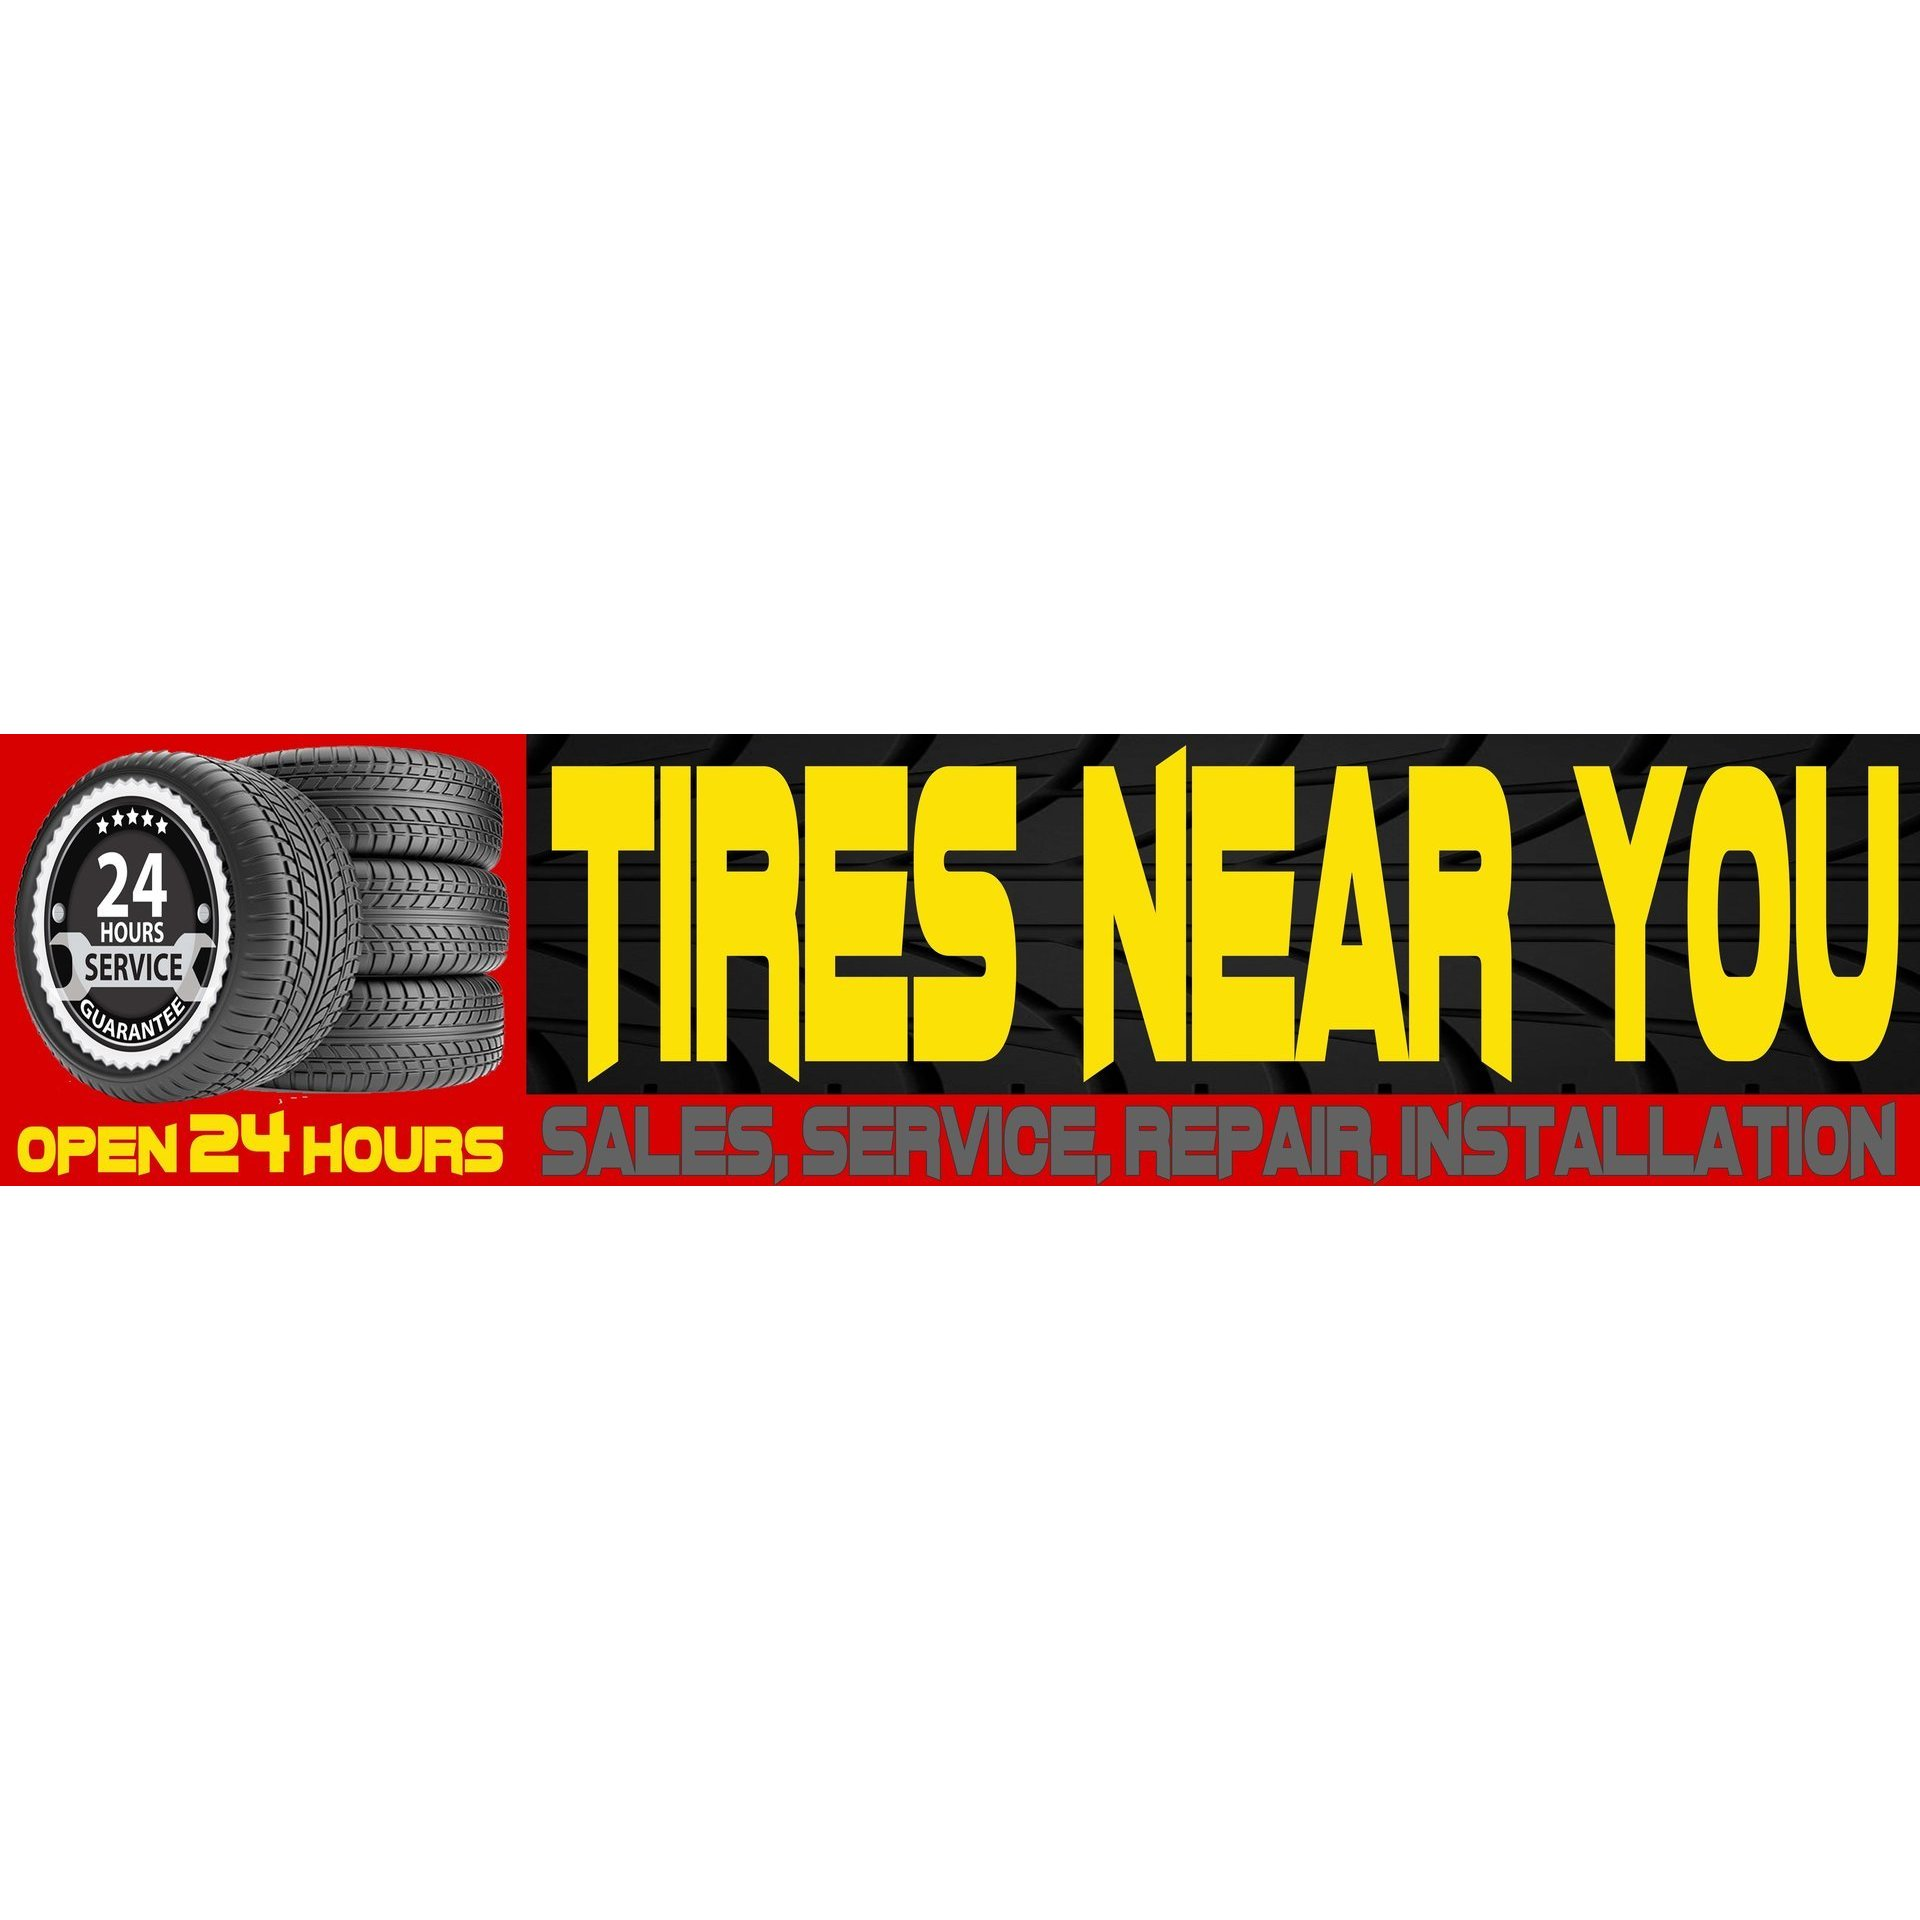 Tires Near You 24/7